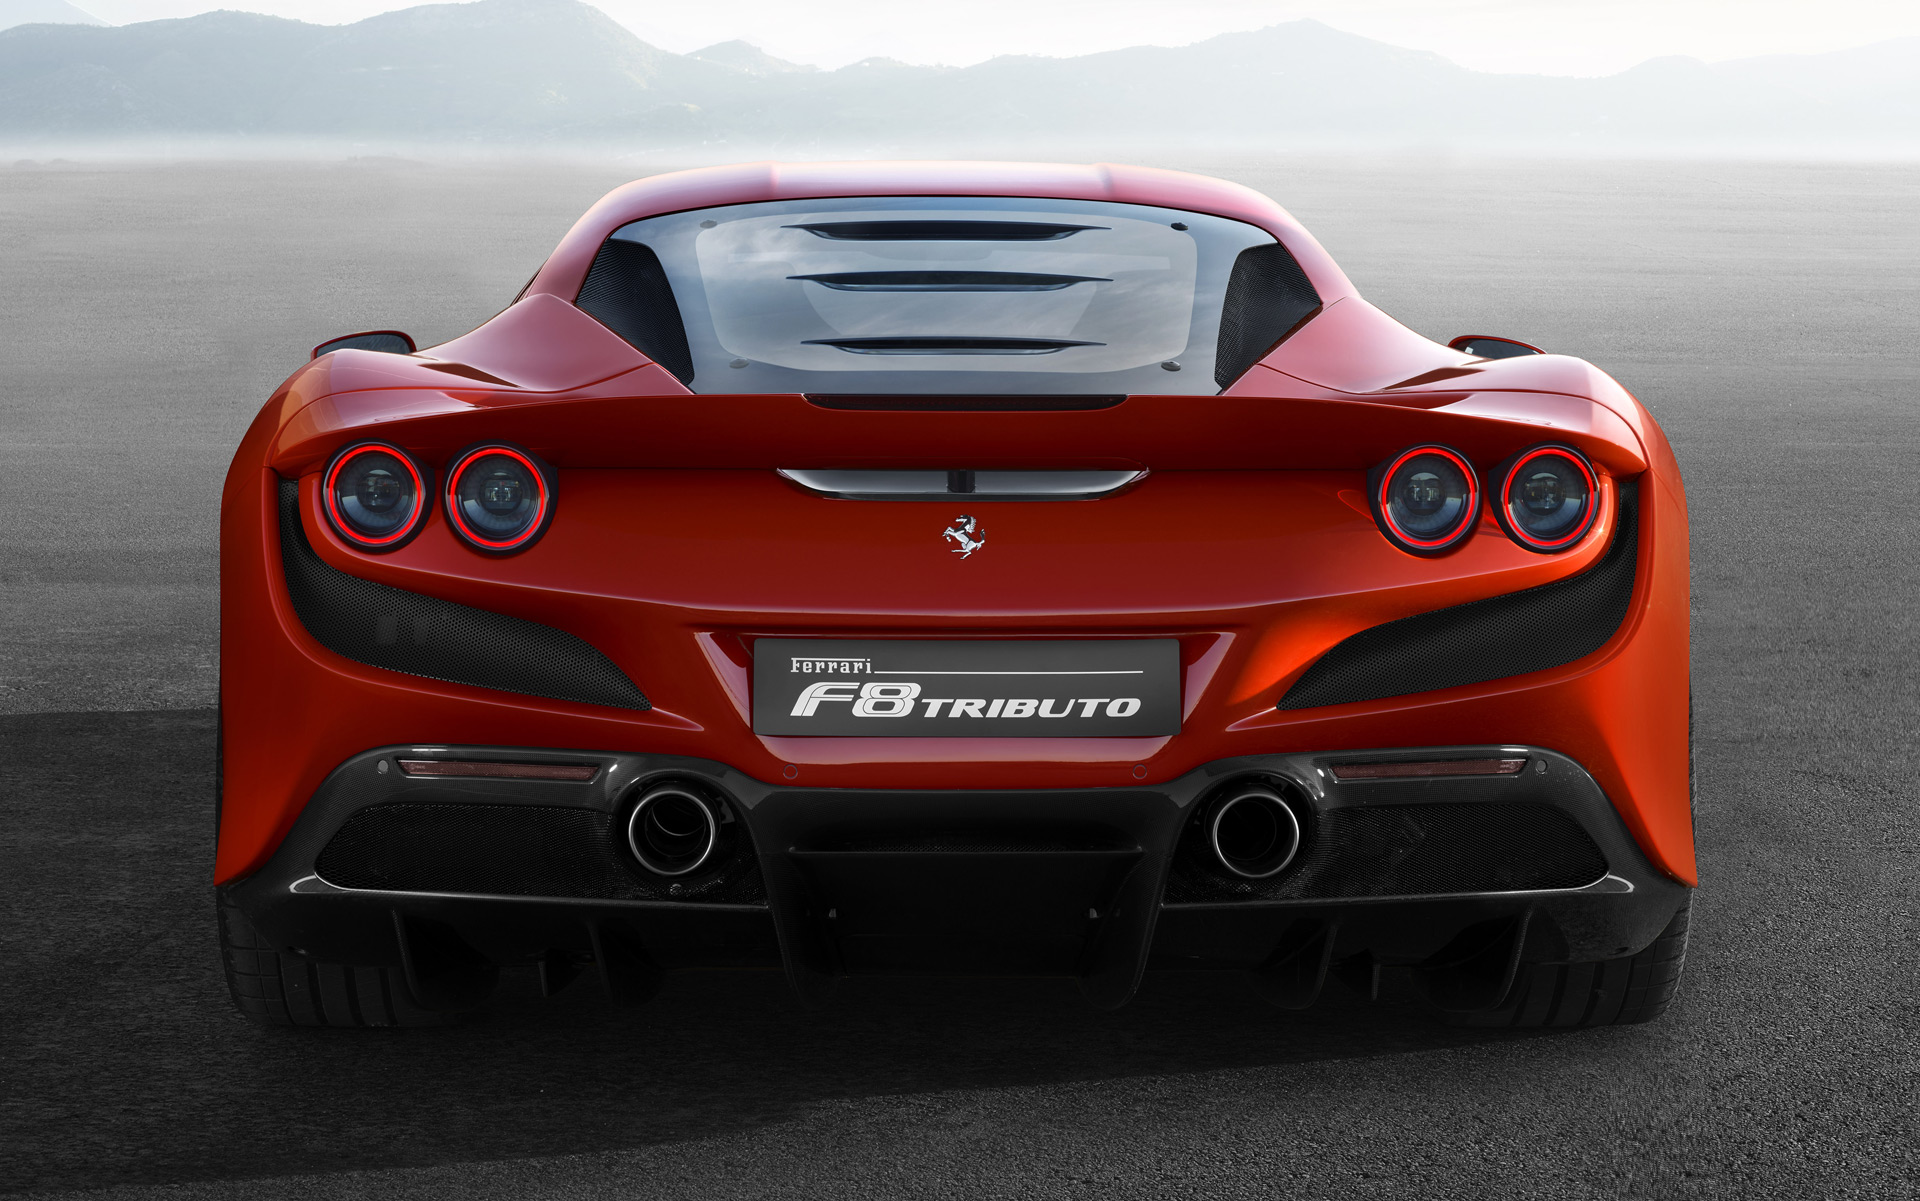 2020 Ferrari F8 Tributo Rear Wallpaper (5)